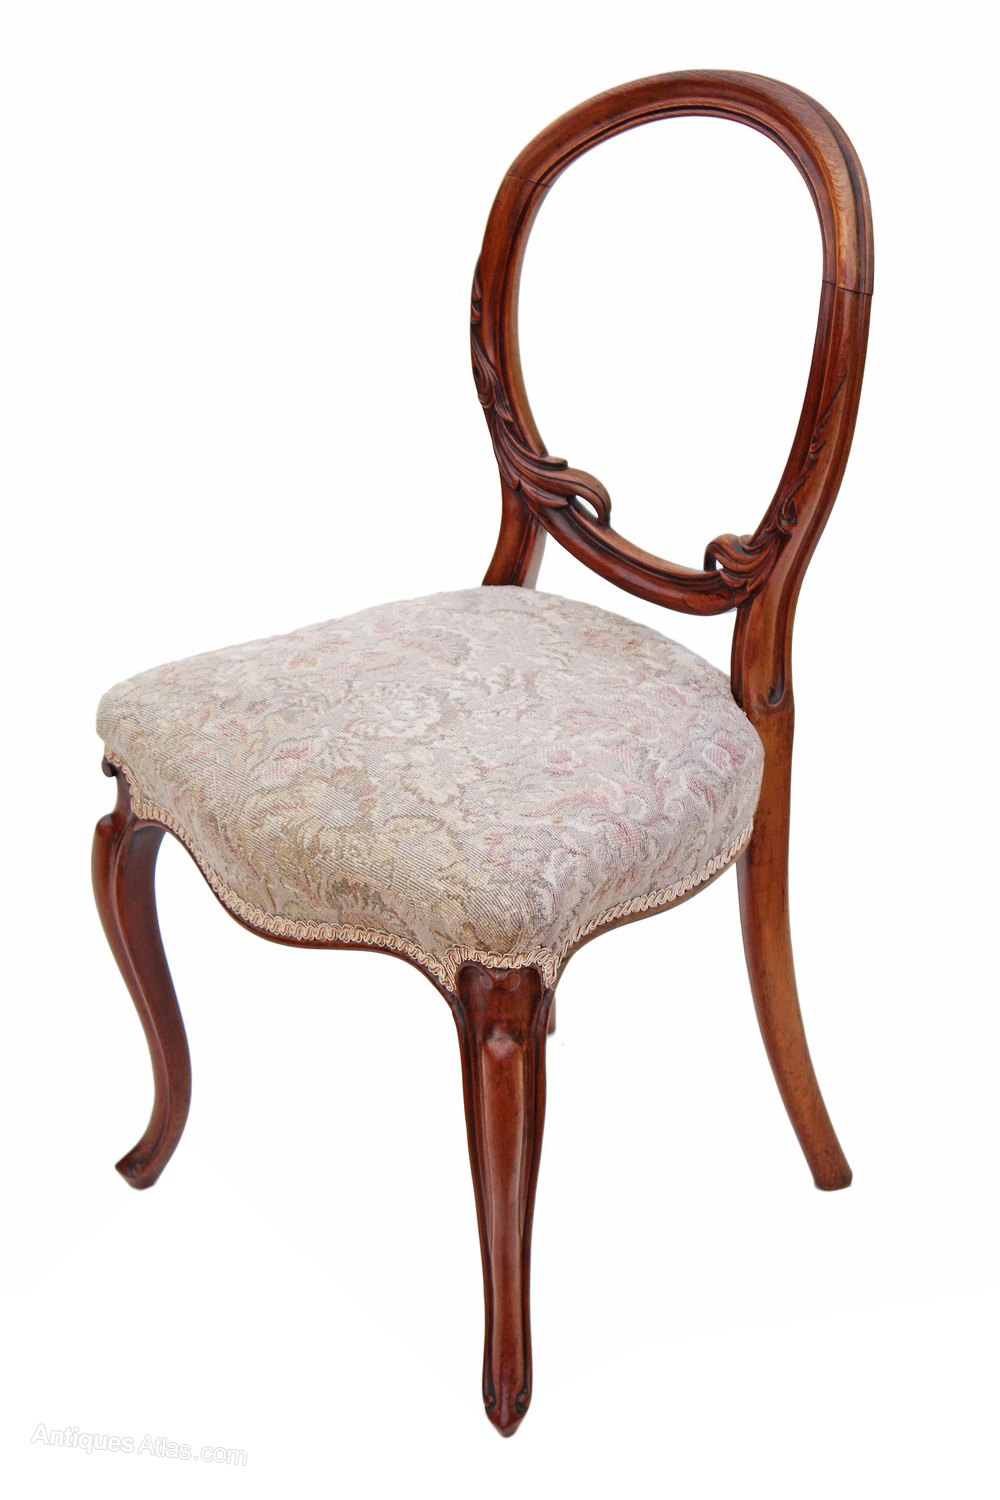 Set Of 6 Victorian Rosewood Dining Chairs Balloon  : Setof6Victorianrosewooddias462a1130z 1 from www.antiquesatlas.com size 1000 x 1500 jpeg 127kB